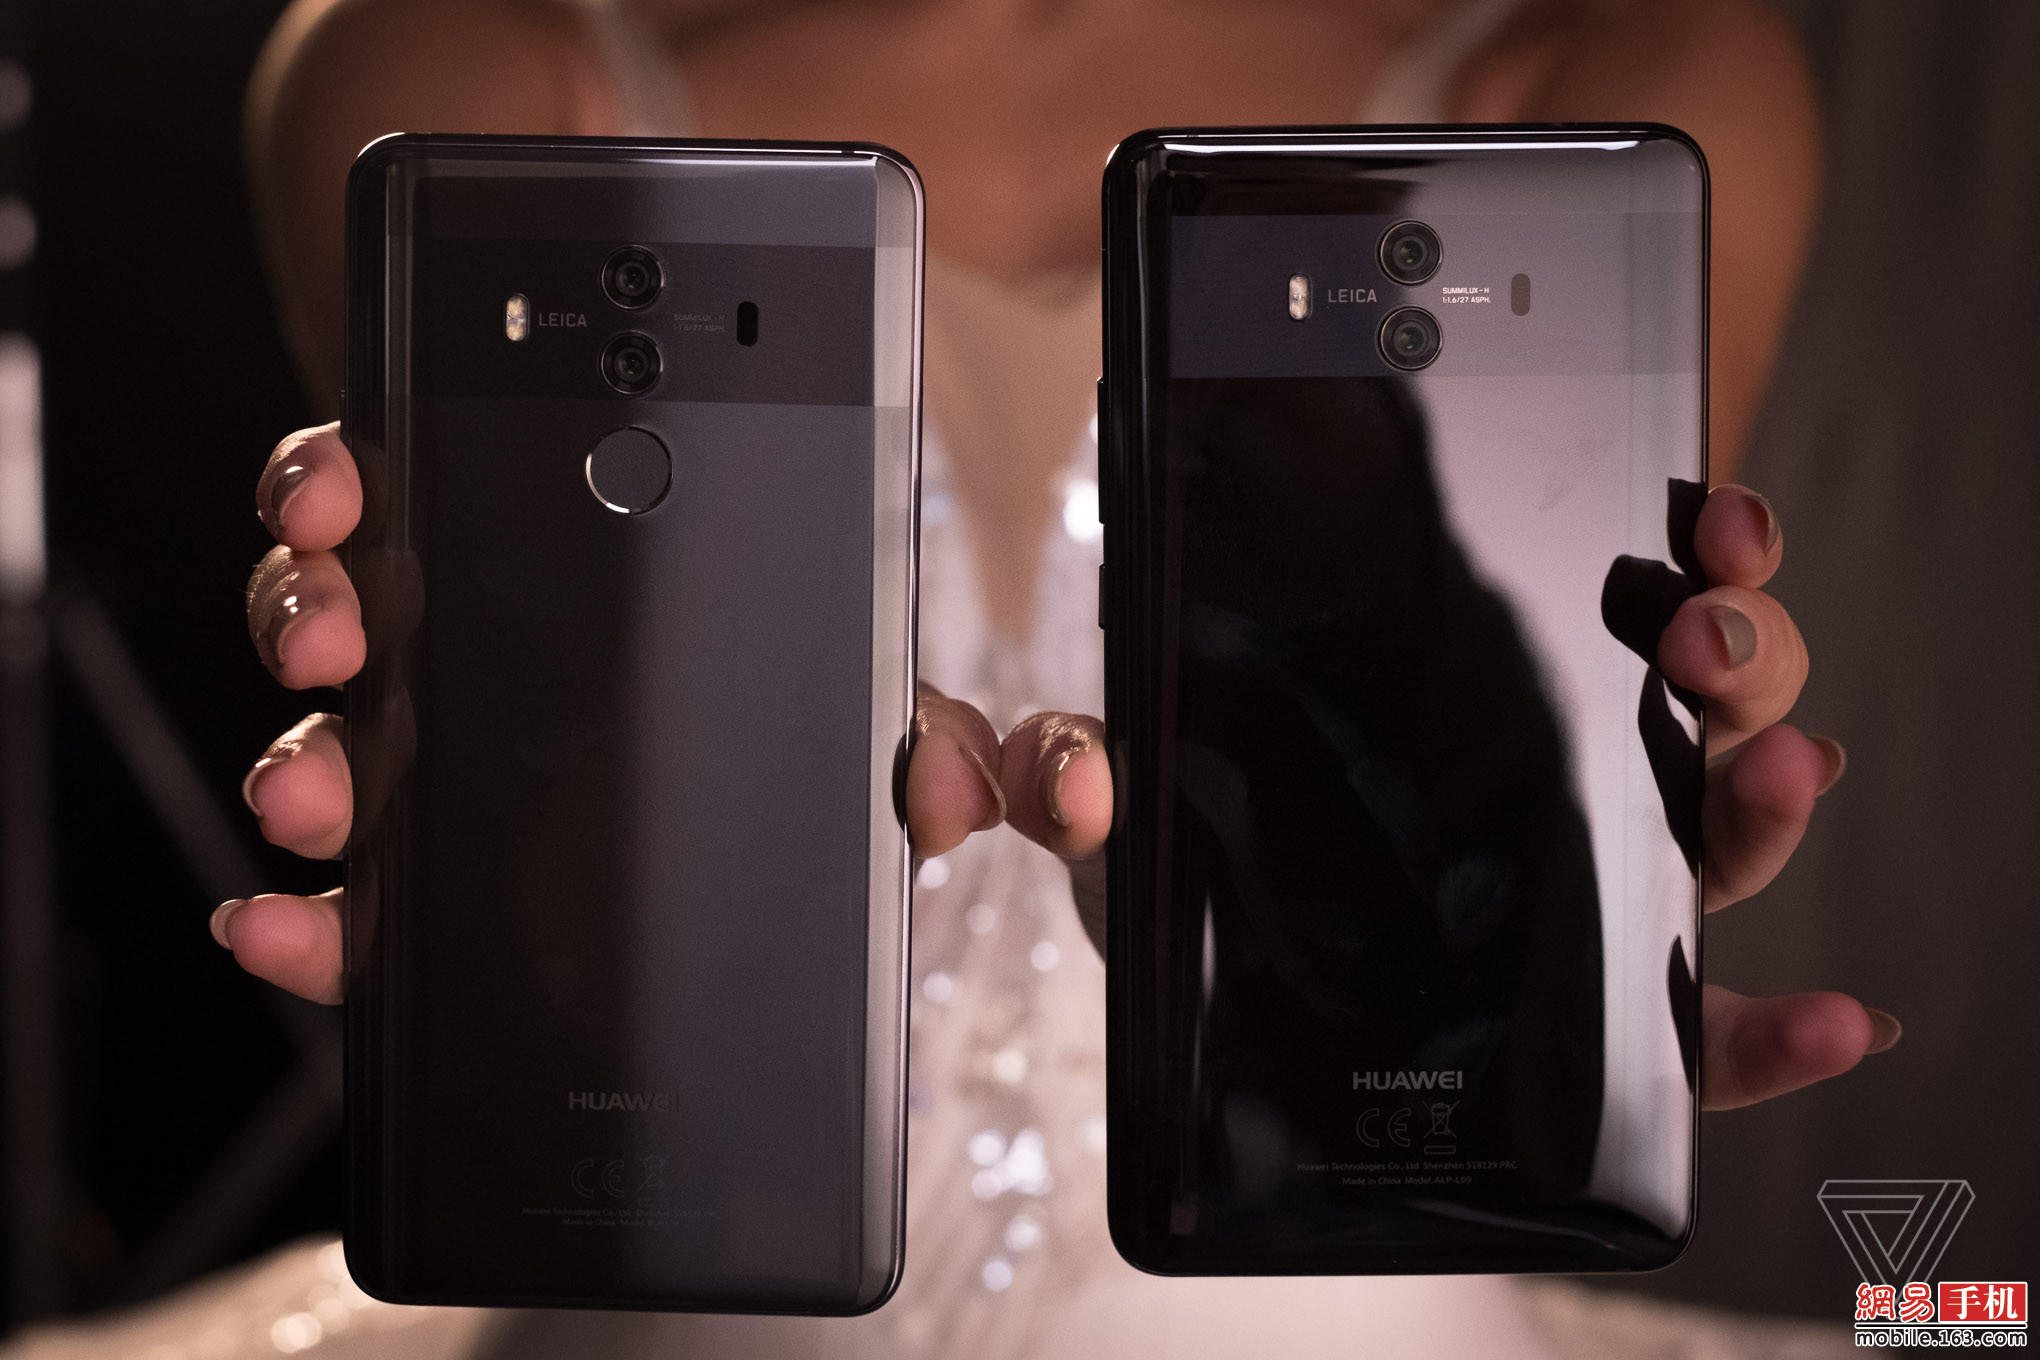 Huawei Mate 10 to challenge Apple